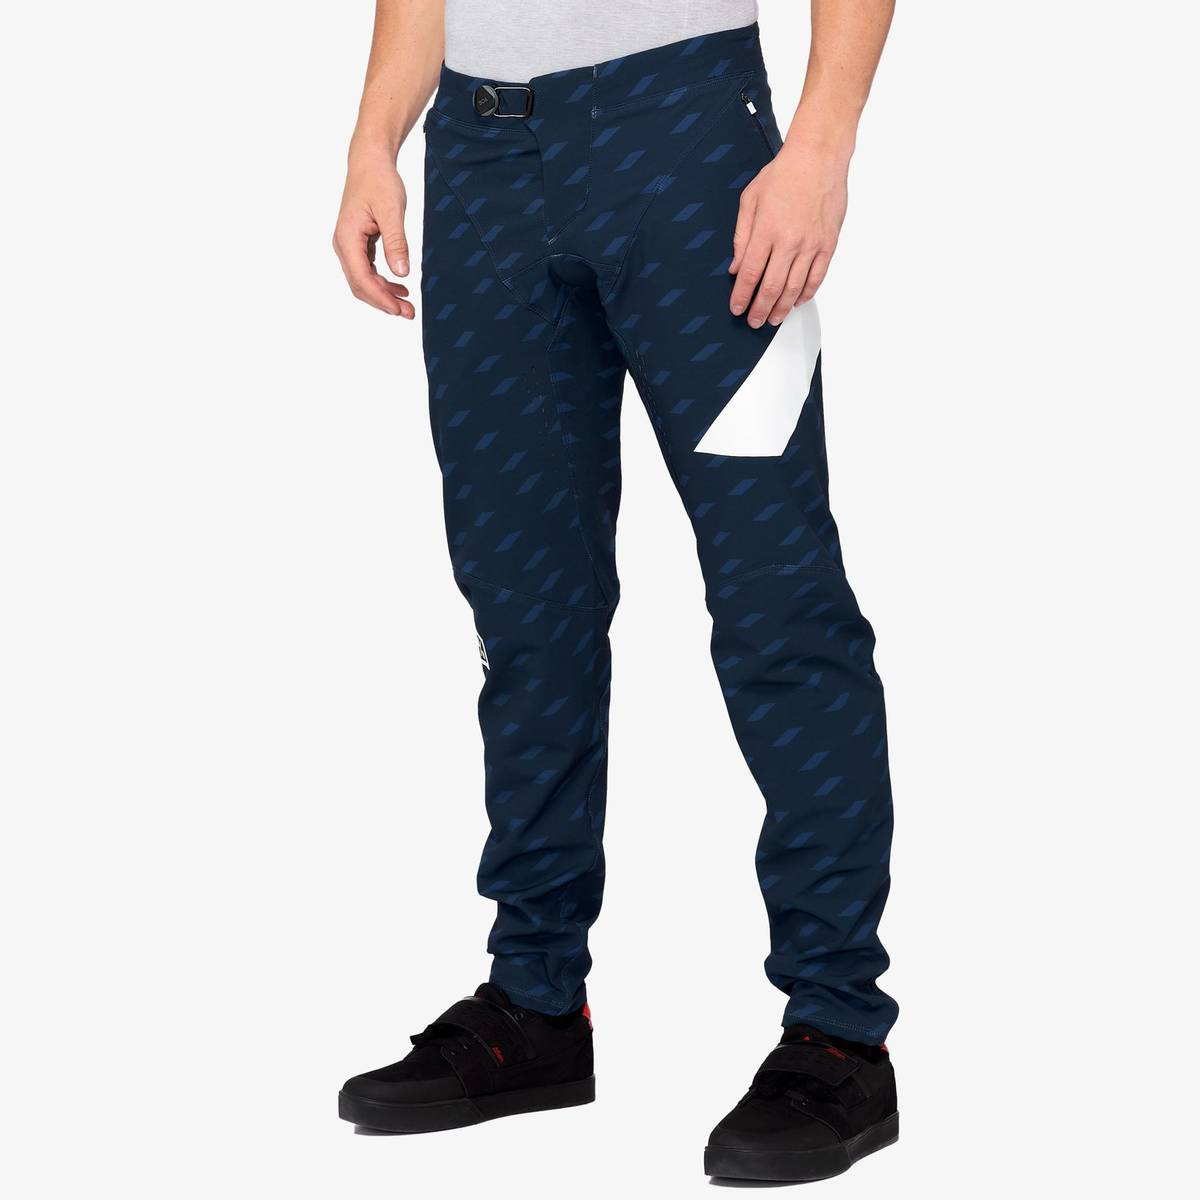 100% R-CORE X Limited Edition Pants Navy/White